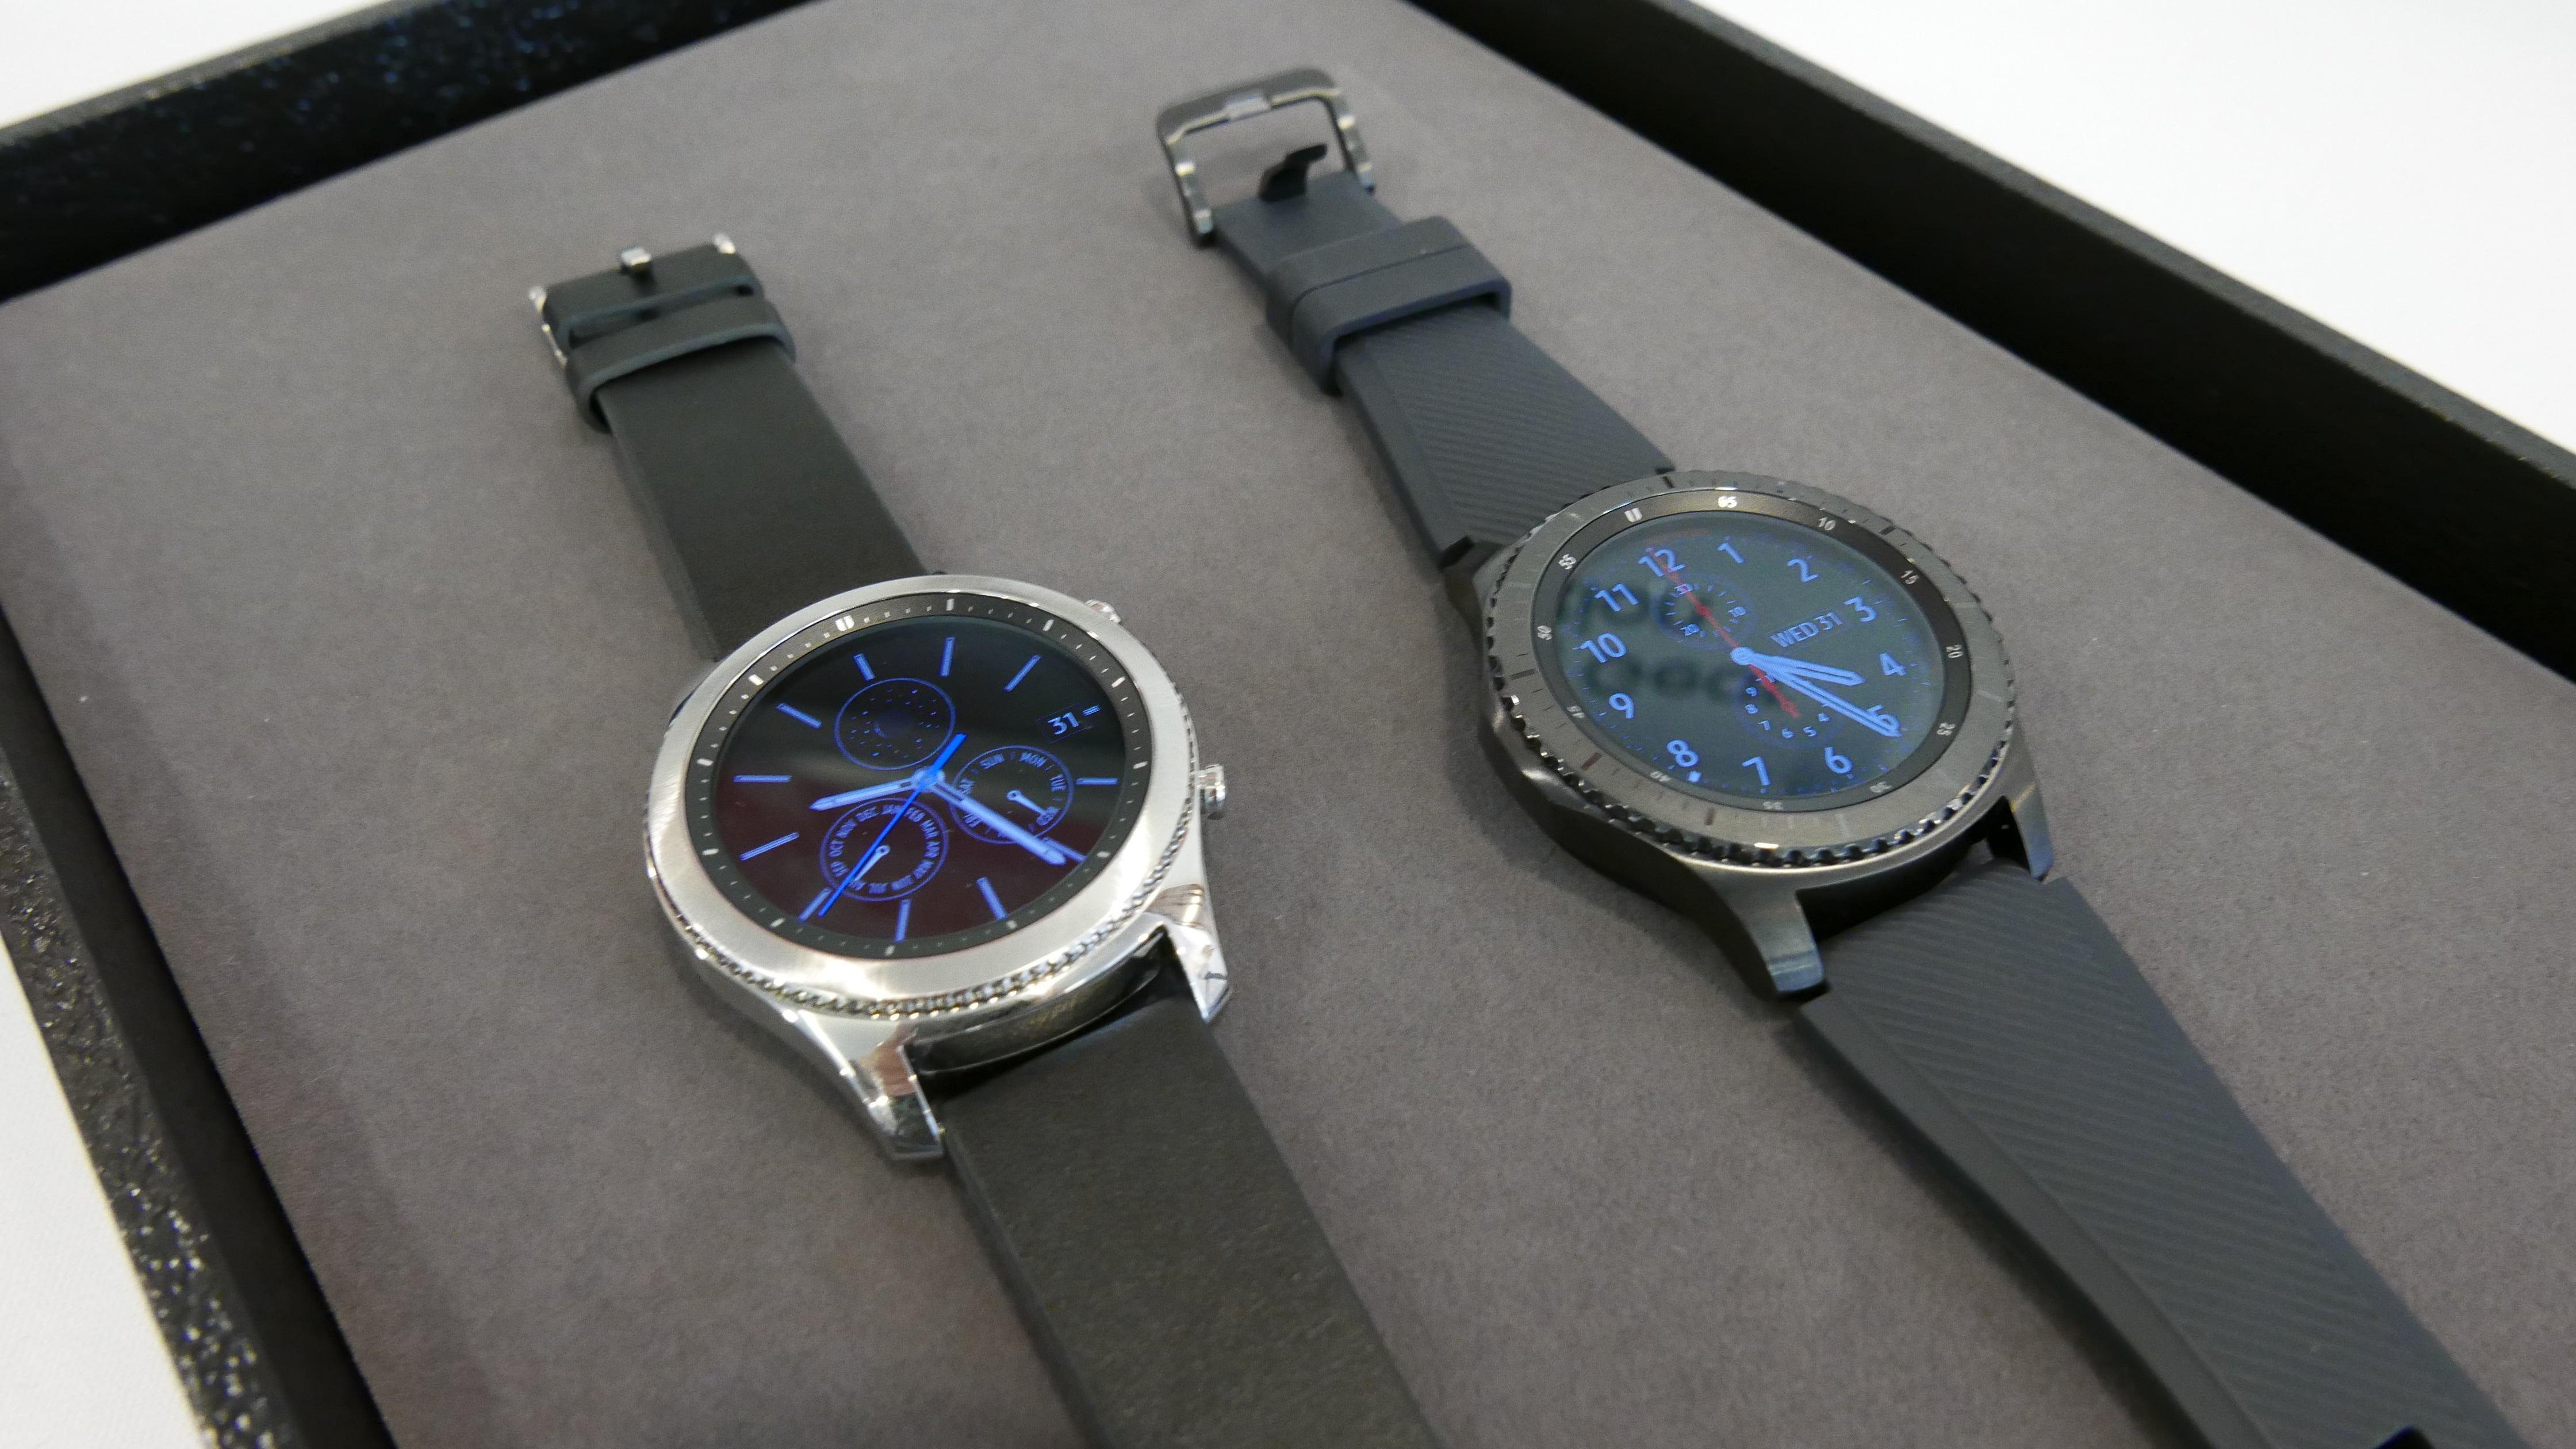 Want Samsung's Gear S3 smartwatch? We've got some bad news ...